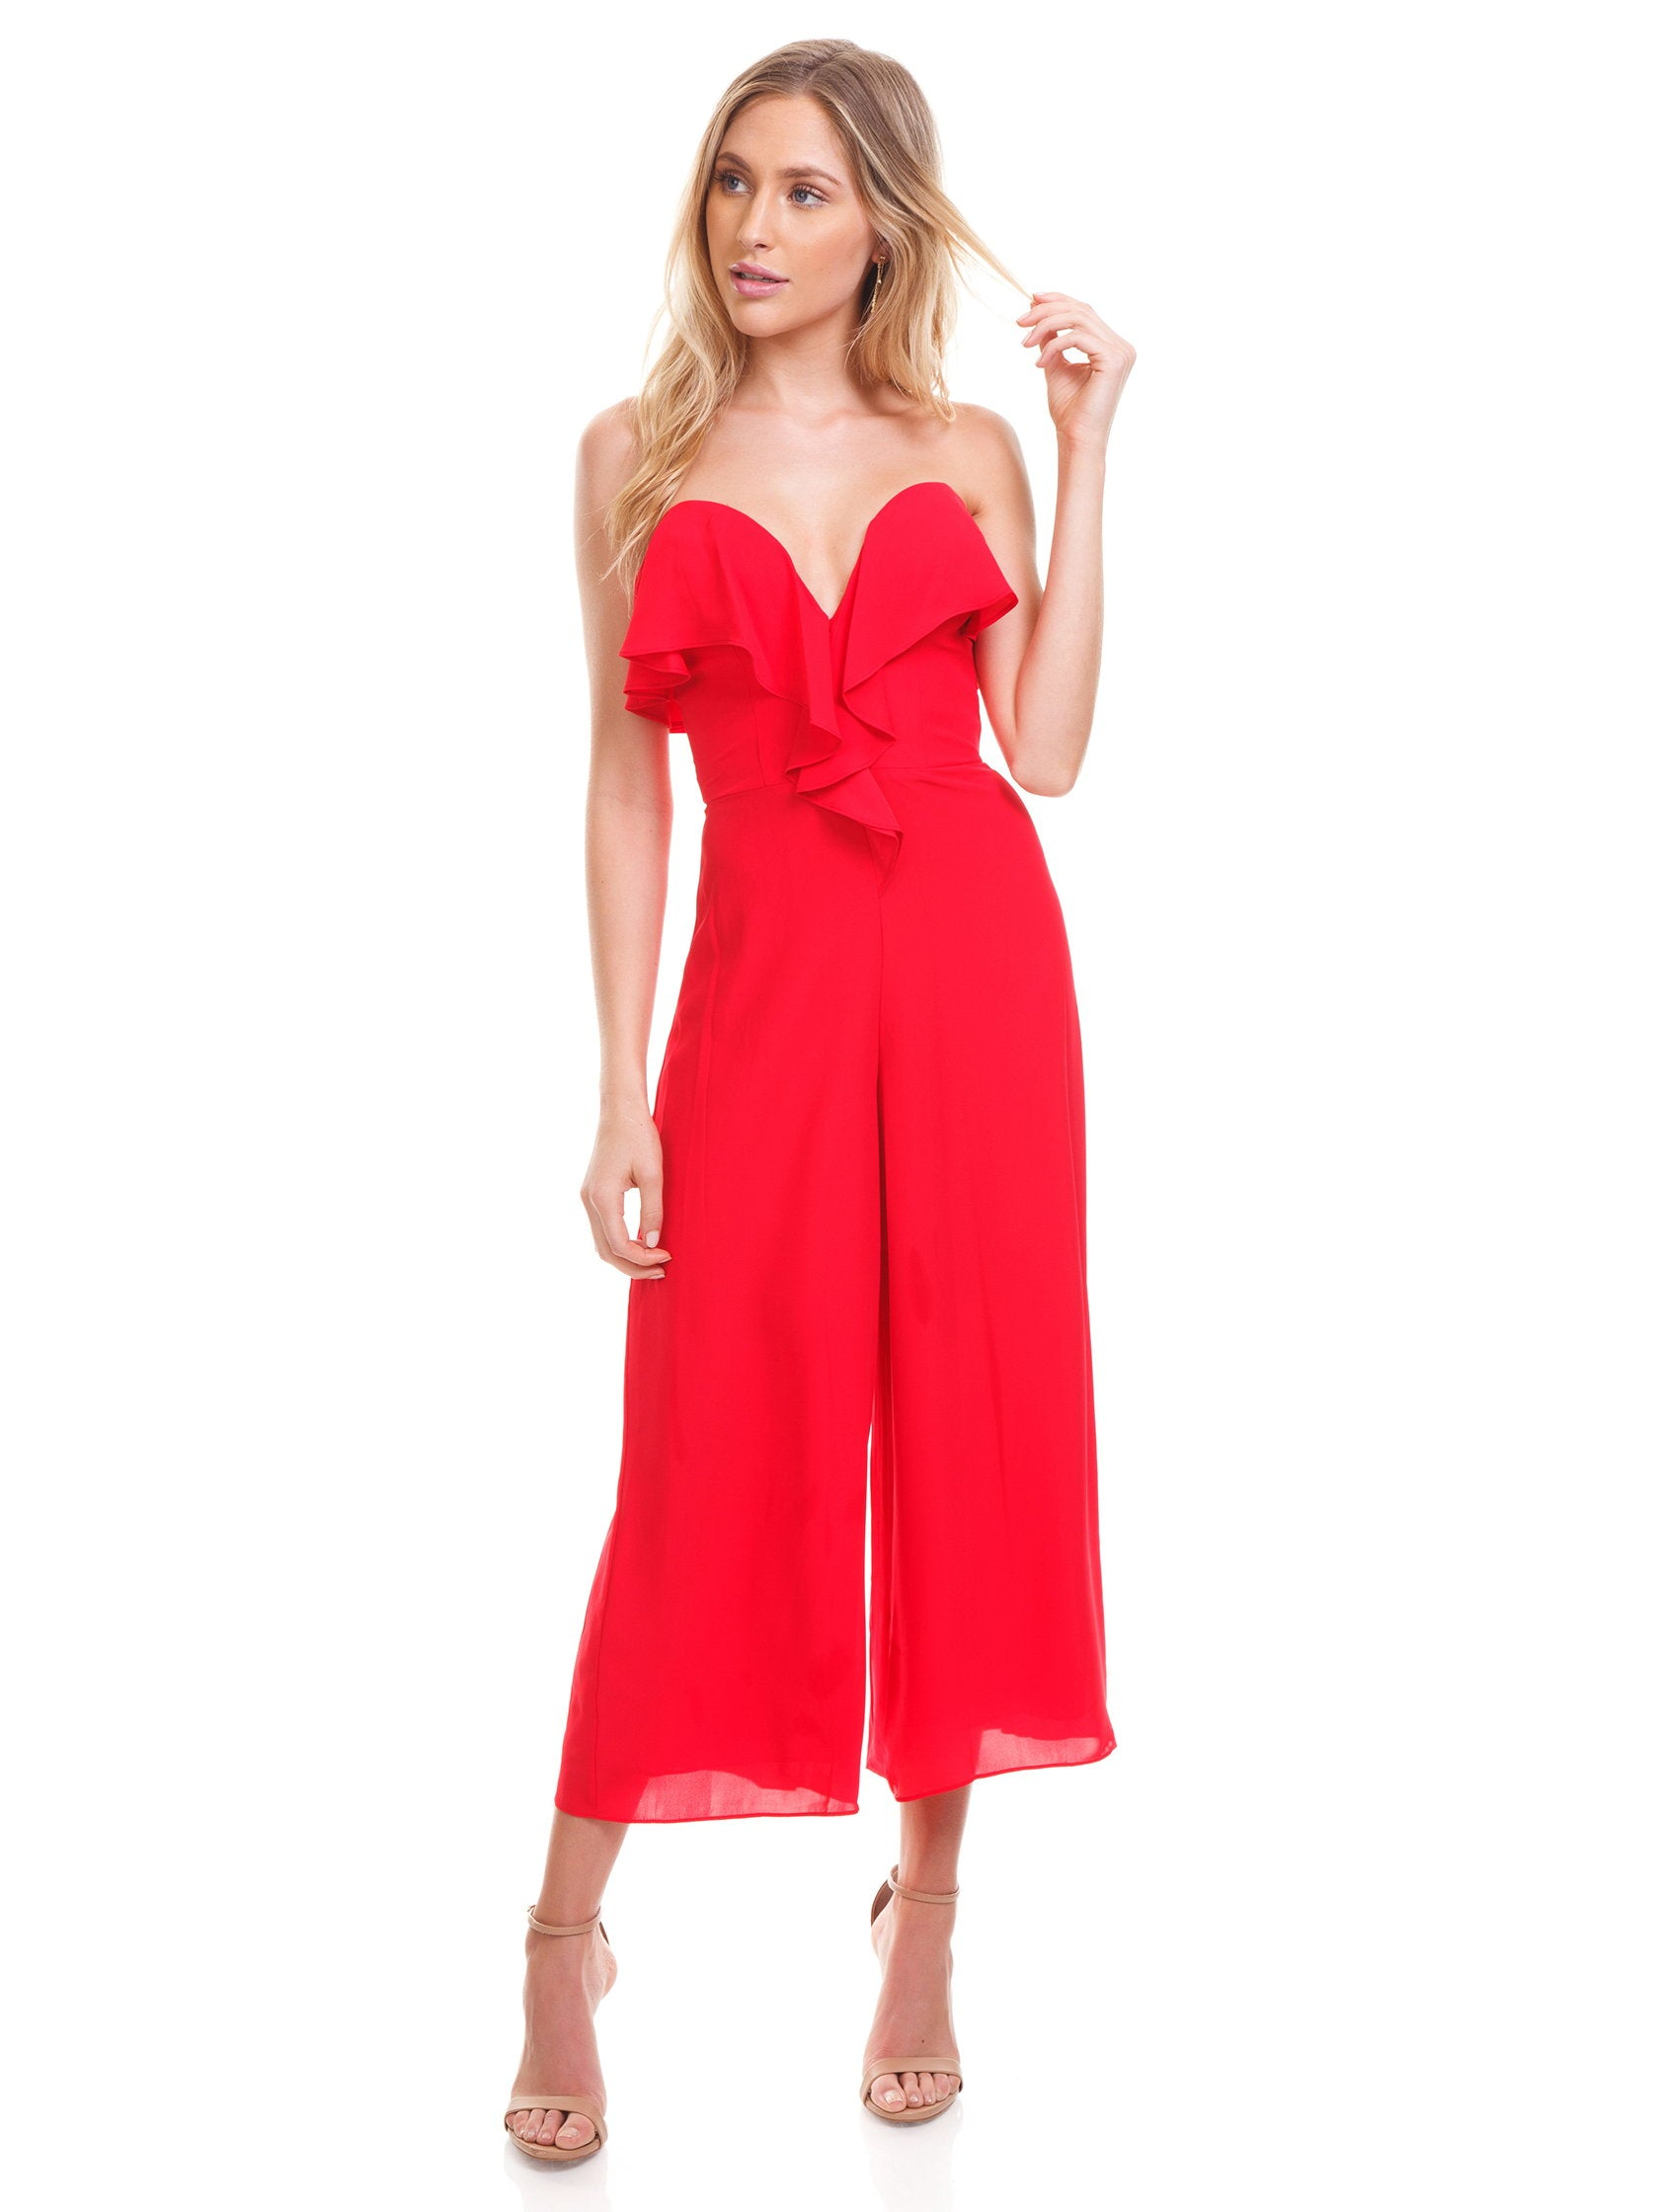 Girl outfit in a jumpsuit rental from Amanda Uprichard called Matisse Jumpsuit